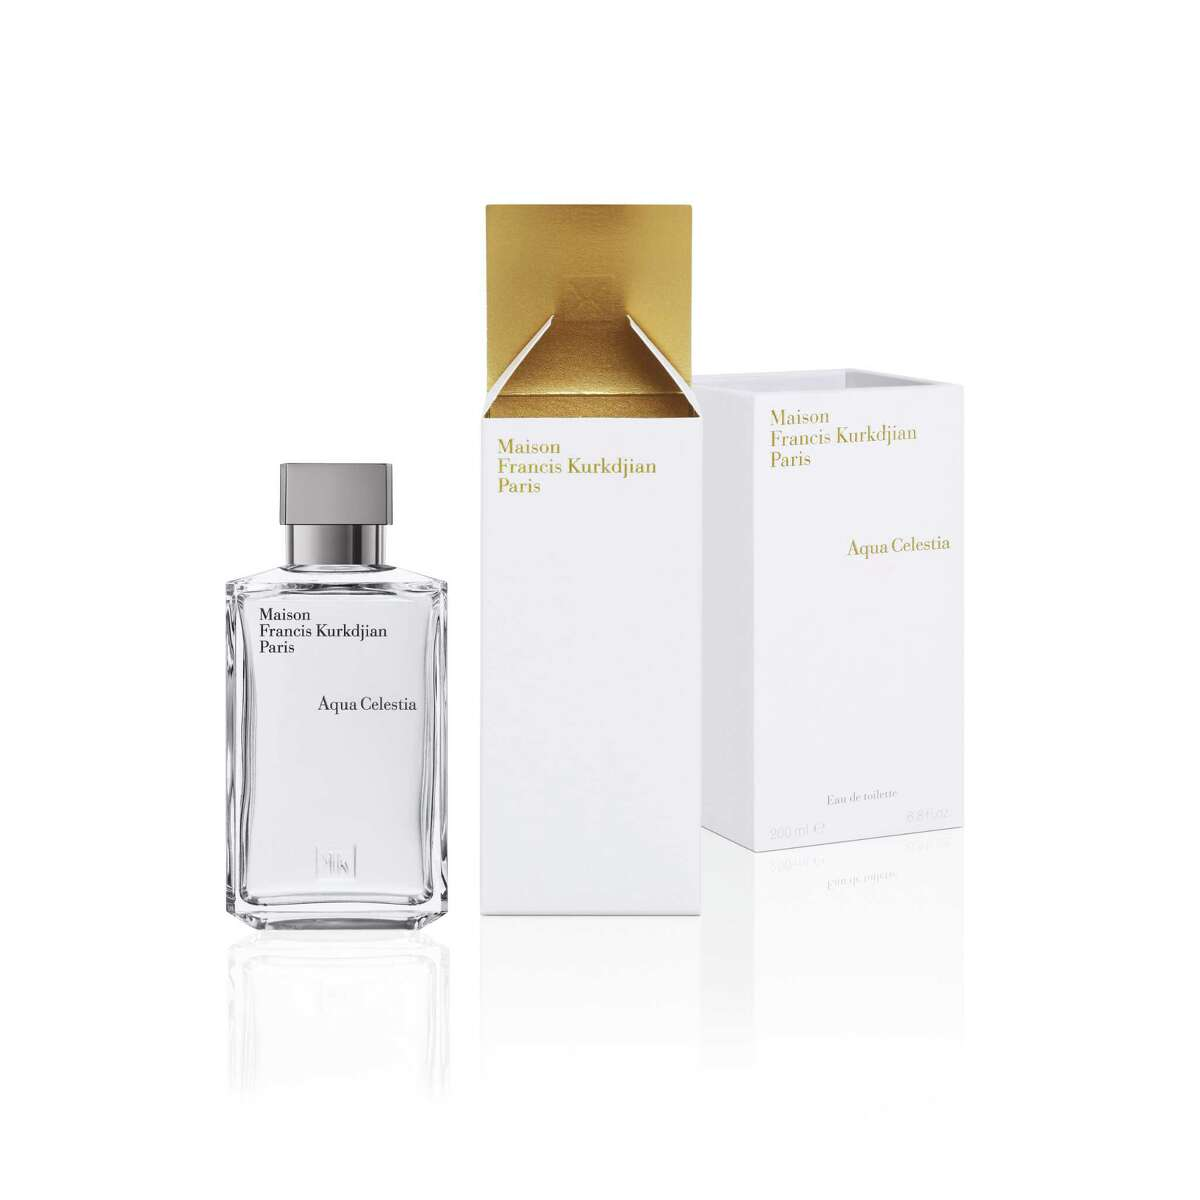 Aqua Celestia is a new fragrance from Maison Francis Kurkdjian featuring the fresh notes of lime, mint, blackcurrant, mimosa blossoms and musk.